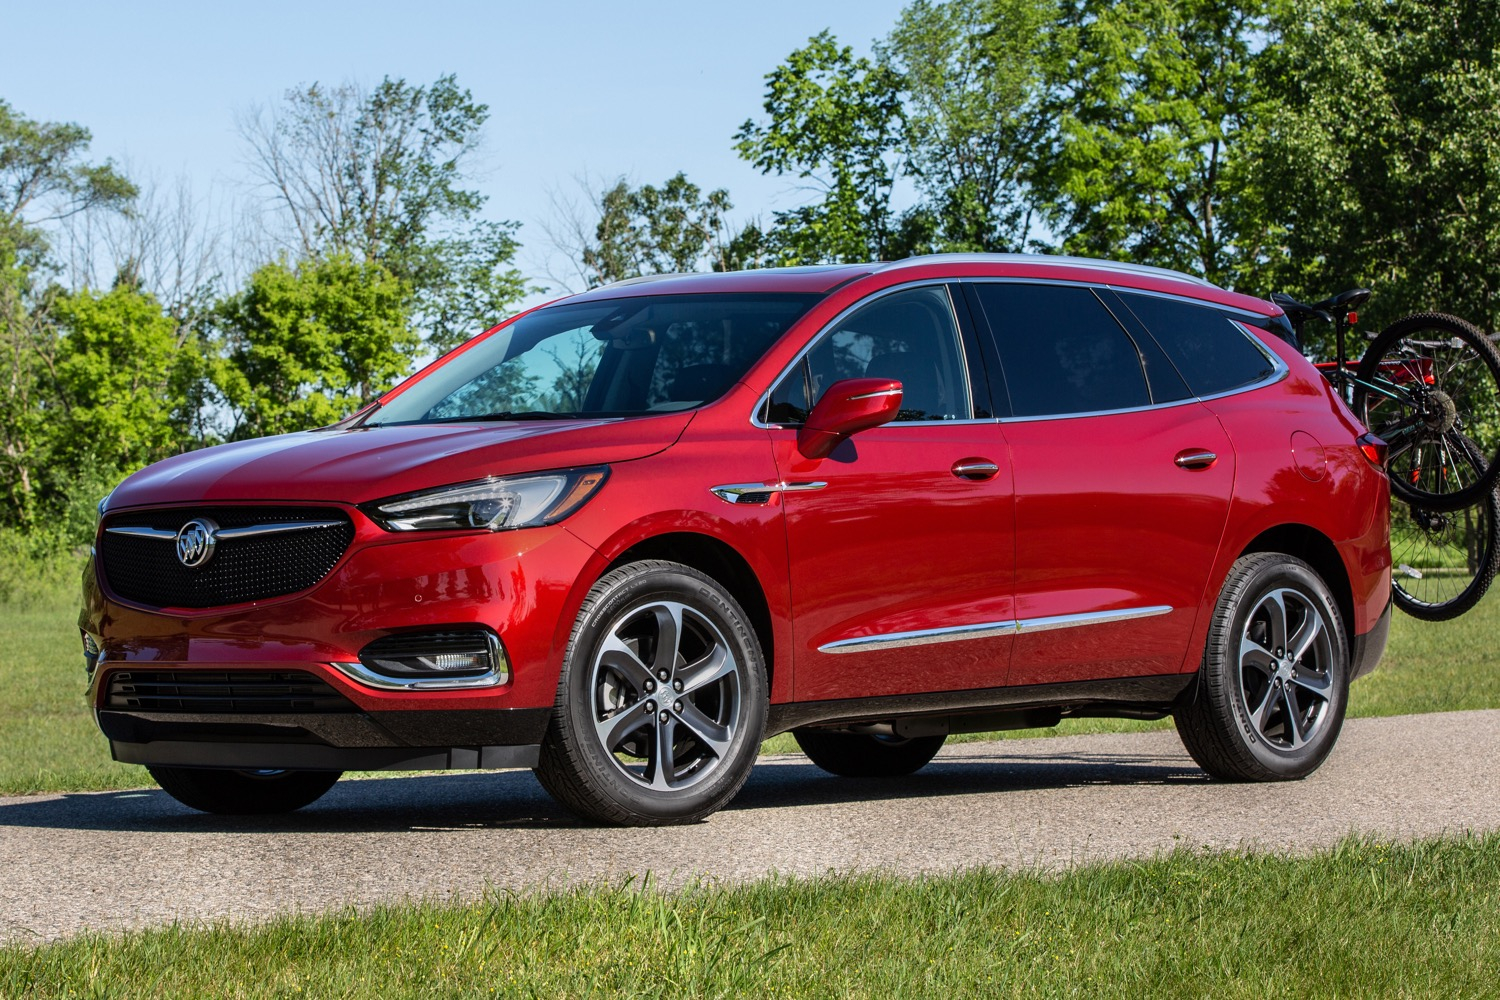 Buick Enclave Discount Cuts Price $5,600 March 2020 | Gm New 2022 Buick Enclave Awd, Build, Lease